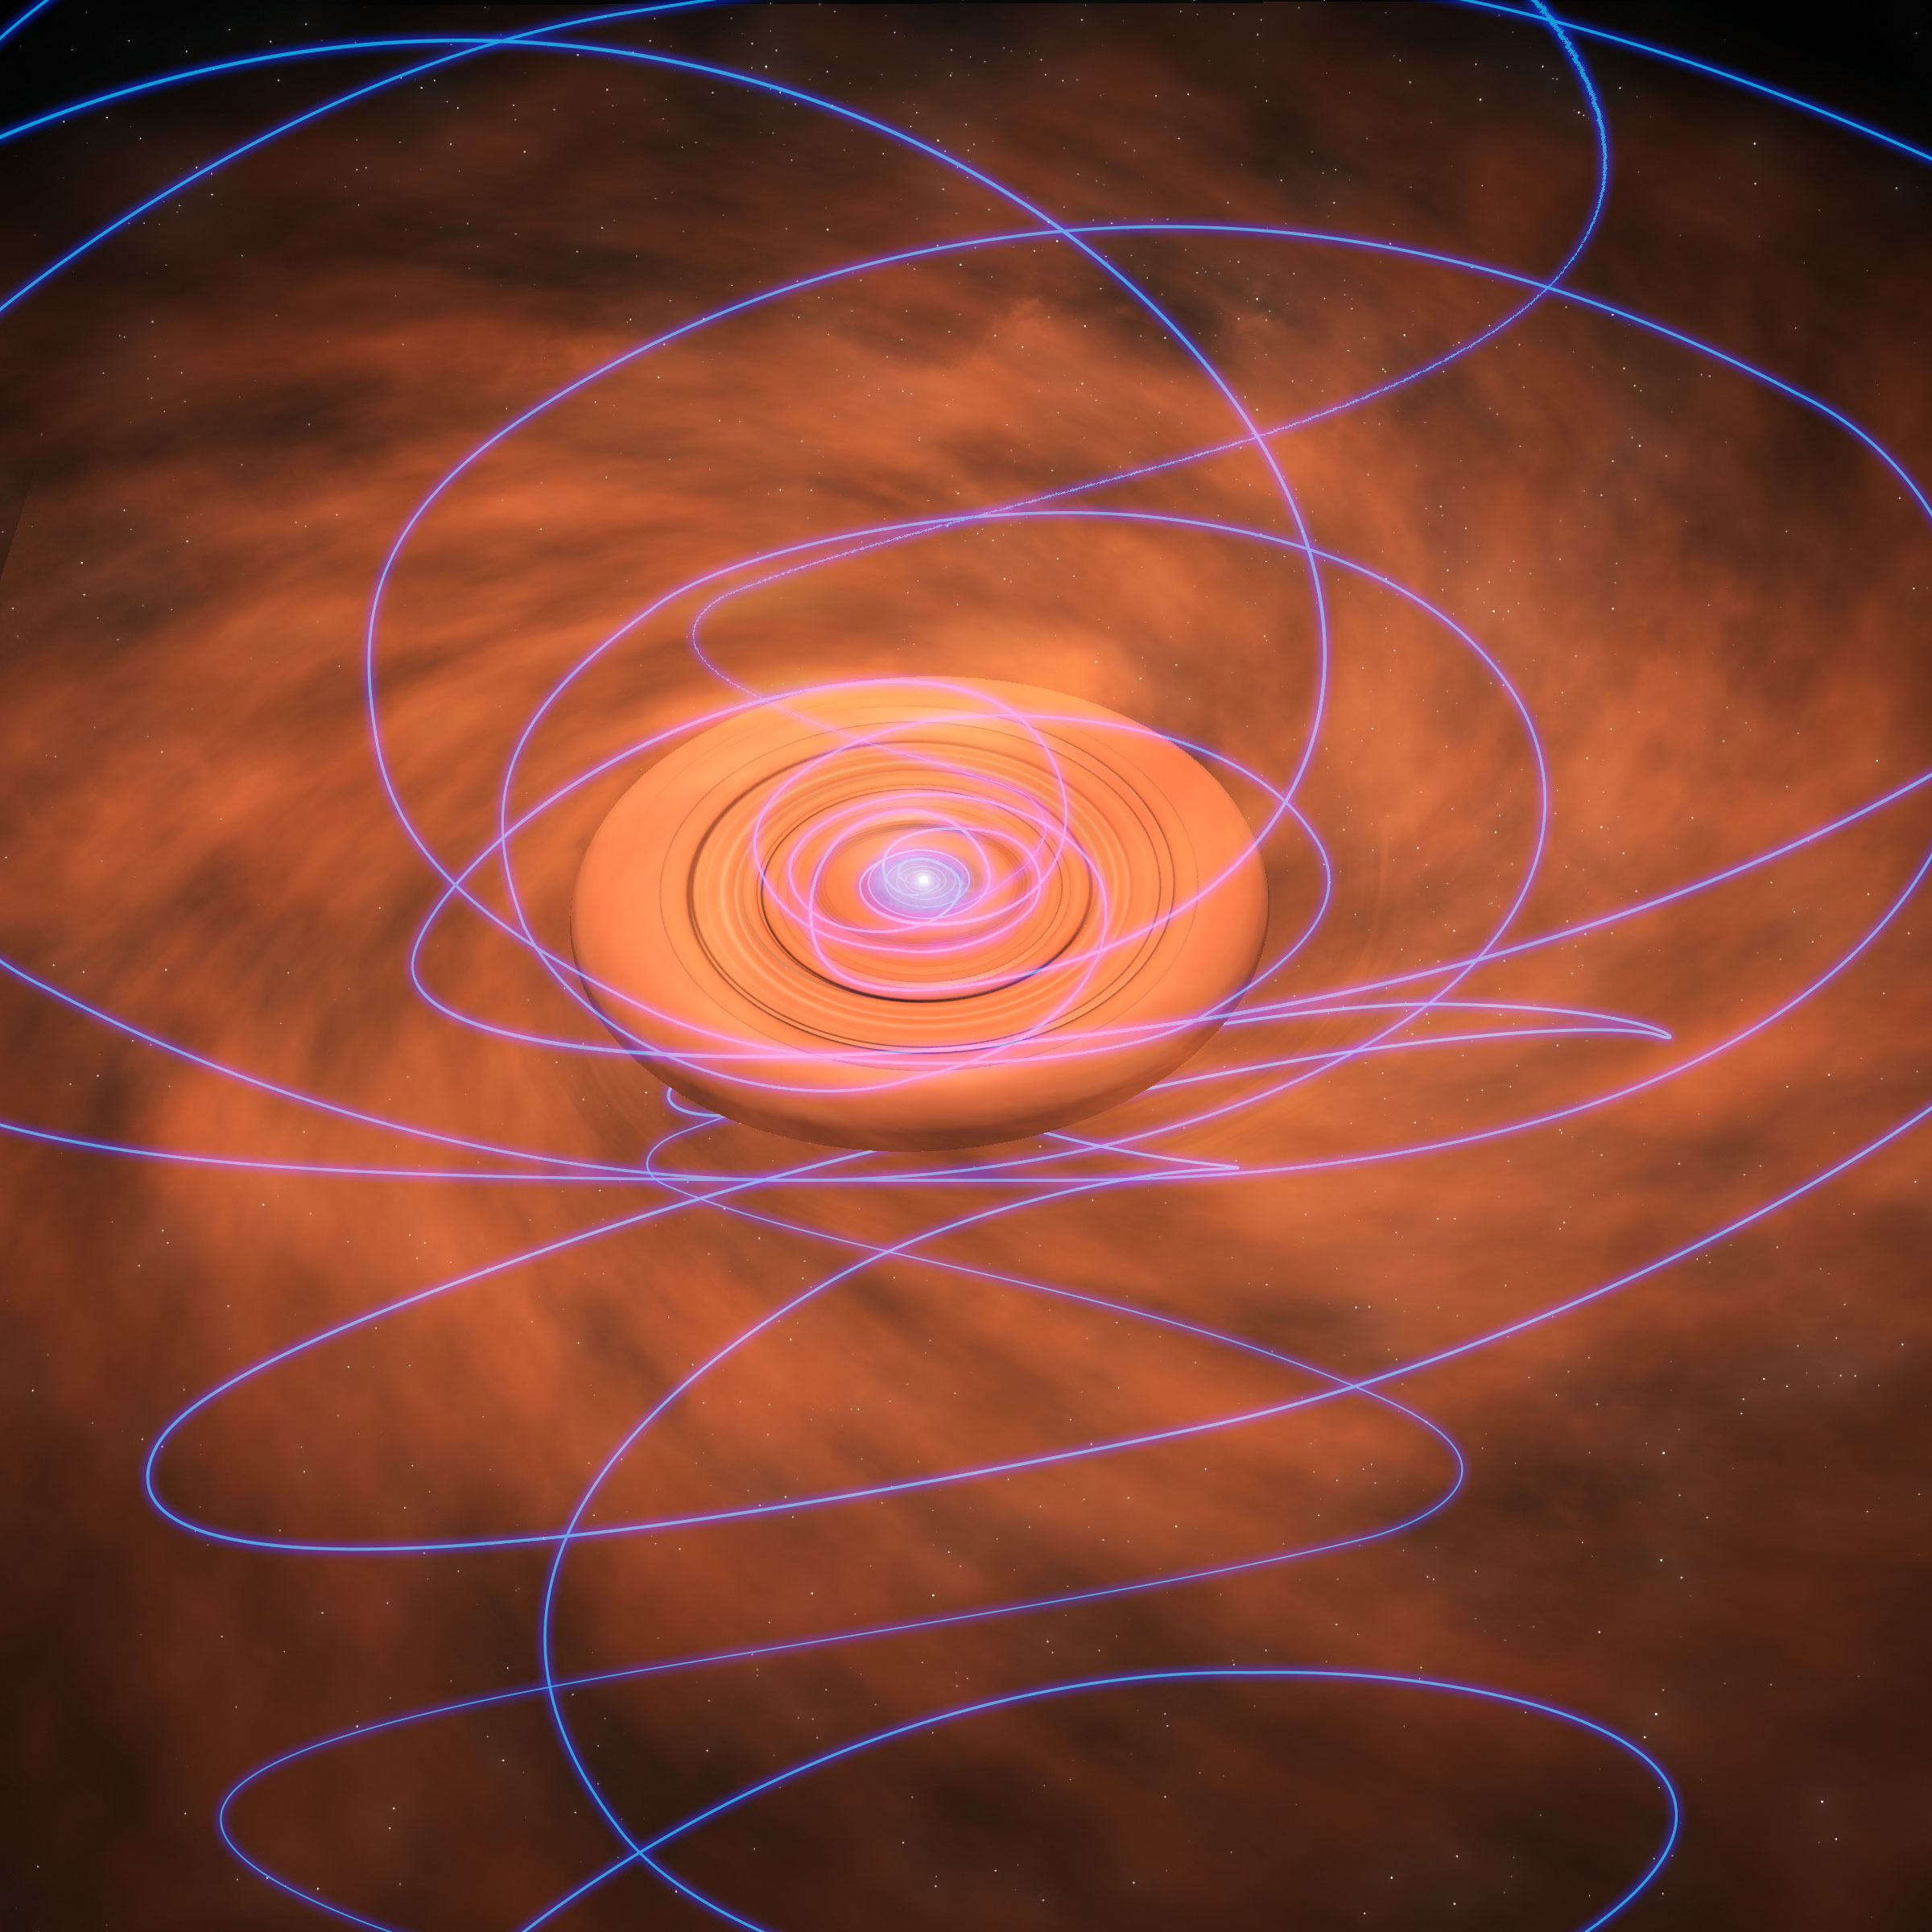 Artist's conception of magnetic field lines twisting into a dusty protoplanetary disk around a young star.